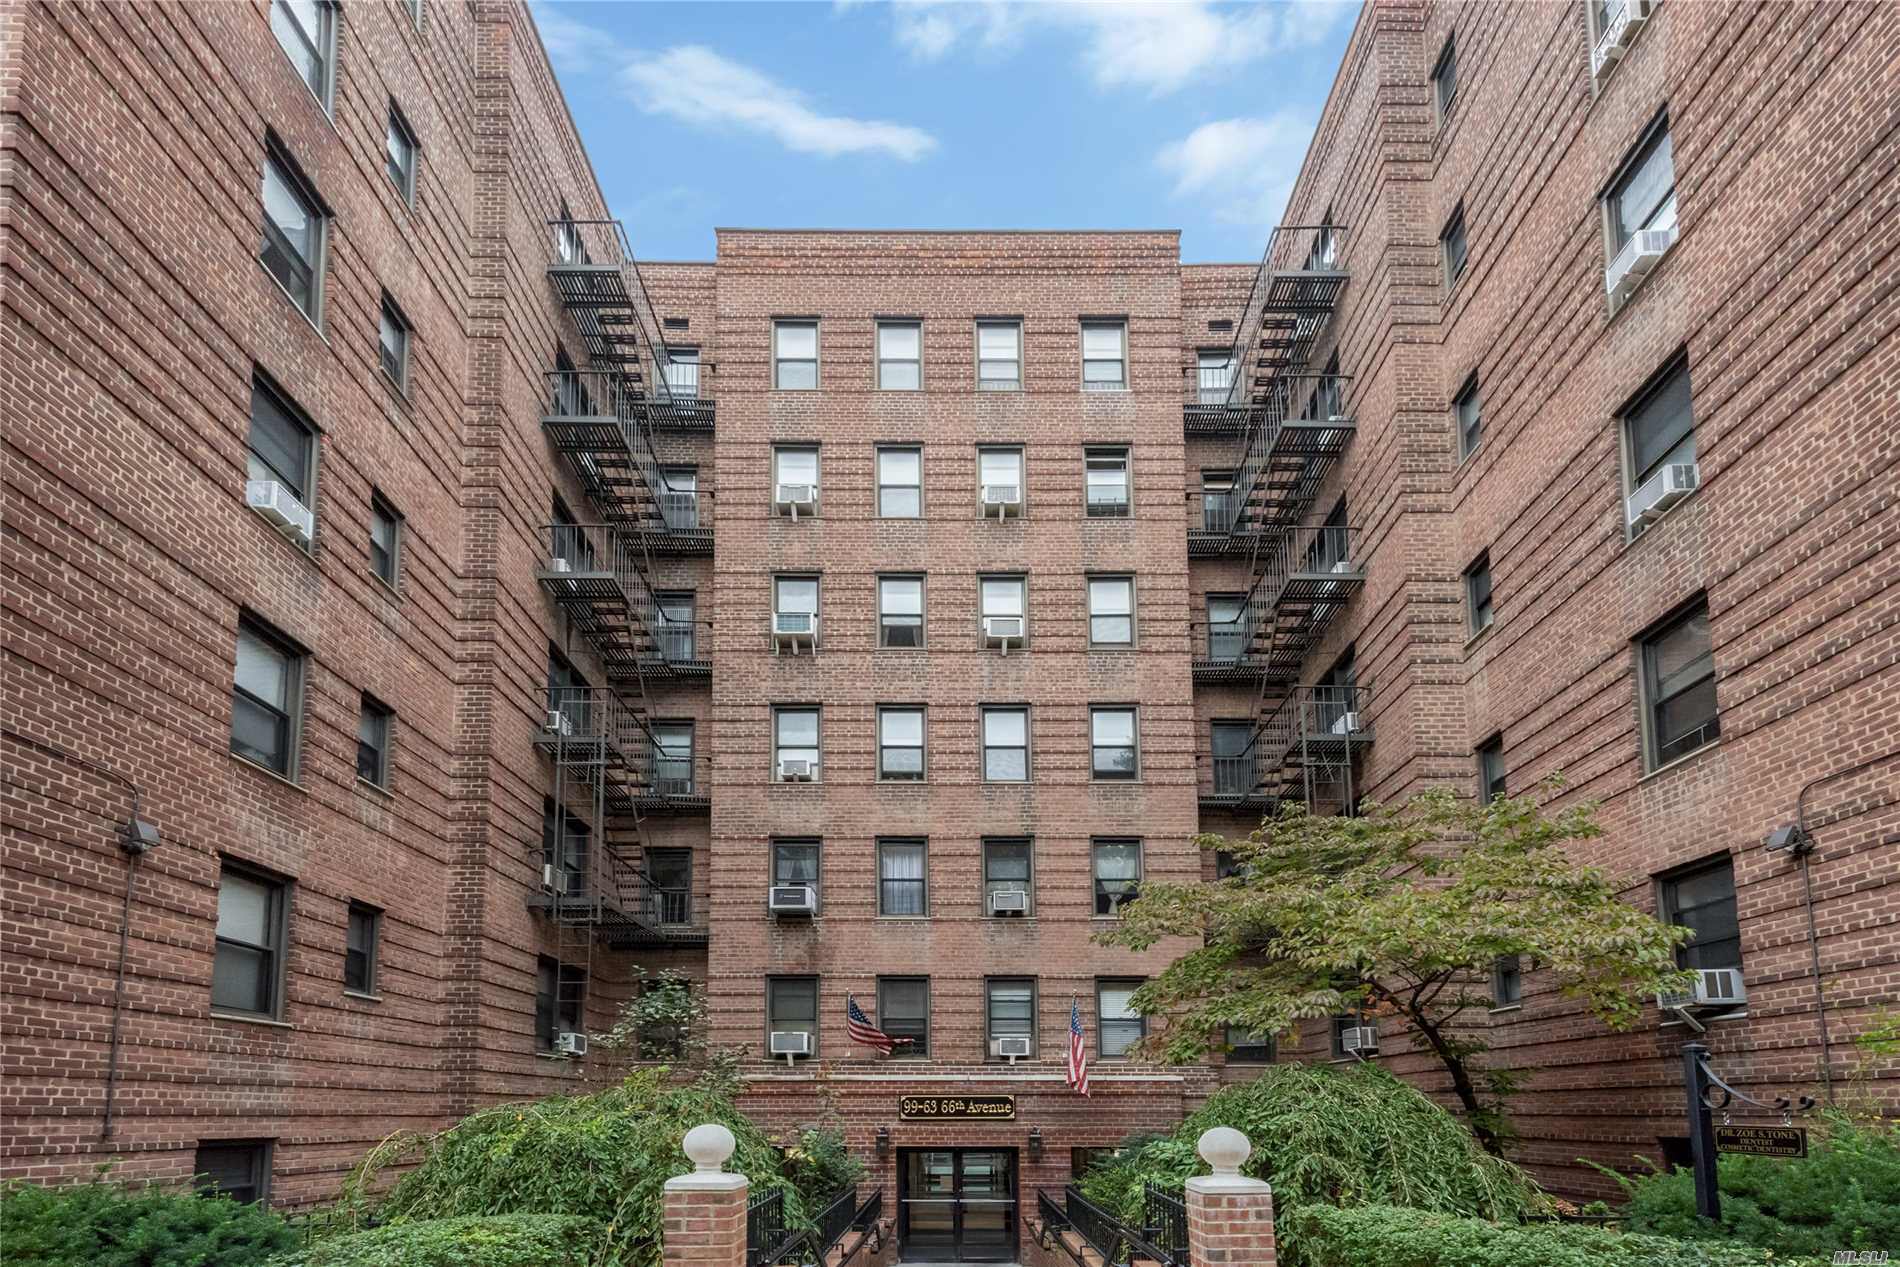 Rego Park. Bright And Beautiful Jr-4/2 Bedrooms With Many Closets, Very Low Maintenance Of $612.48 Heat And Water Included. 2 Blocks To Subway On 67th, Local Shopping, Major Malls. New Carpet, New Light & Fixture, New Painting On Wall & Ceiling, New Door, New Washer And Dryer In The Building.